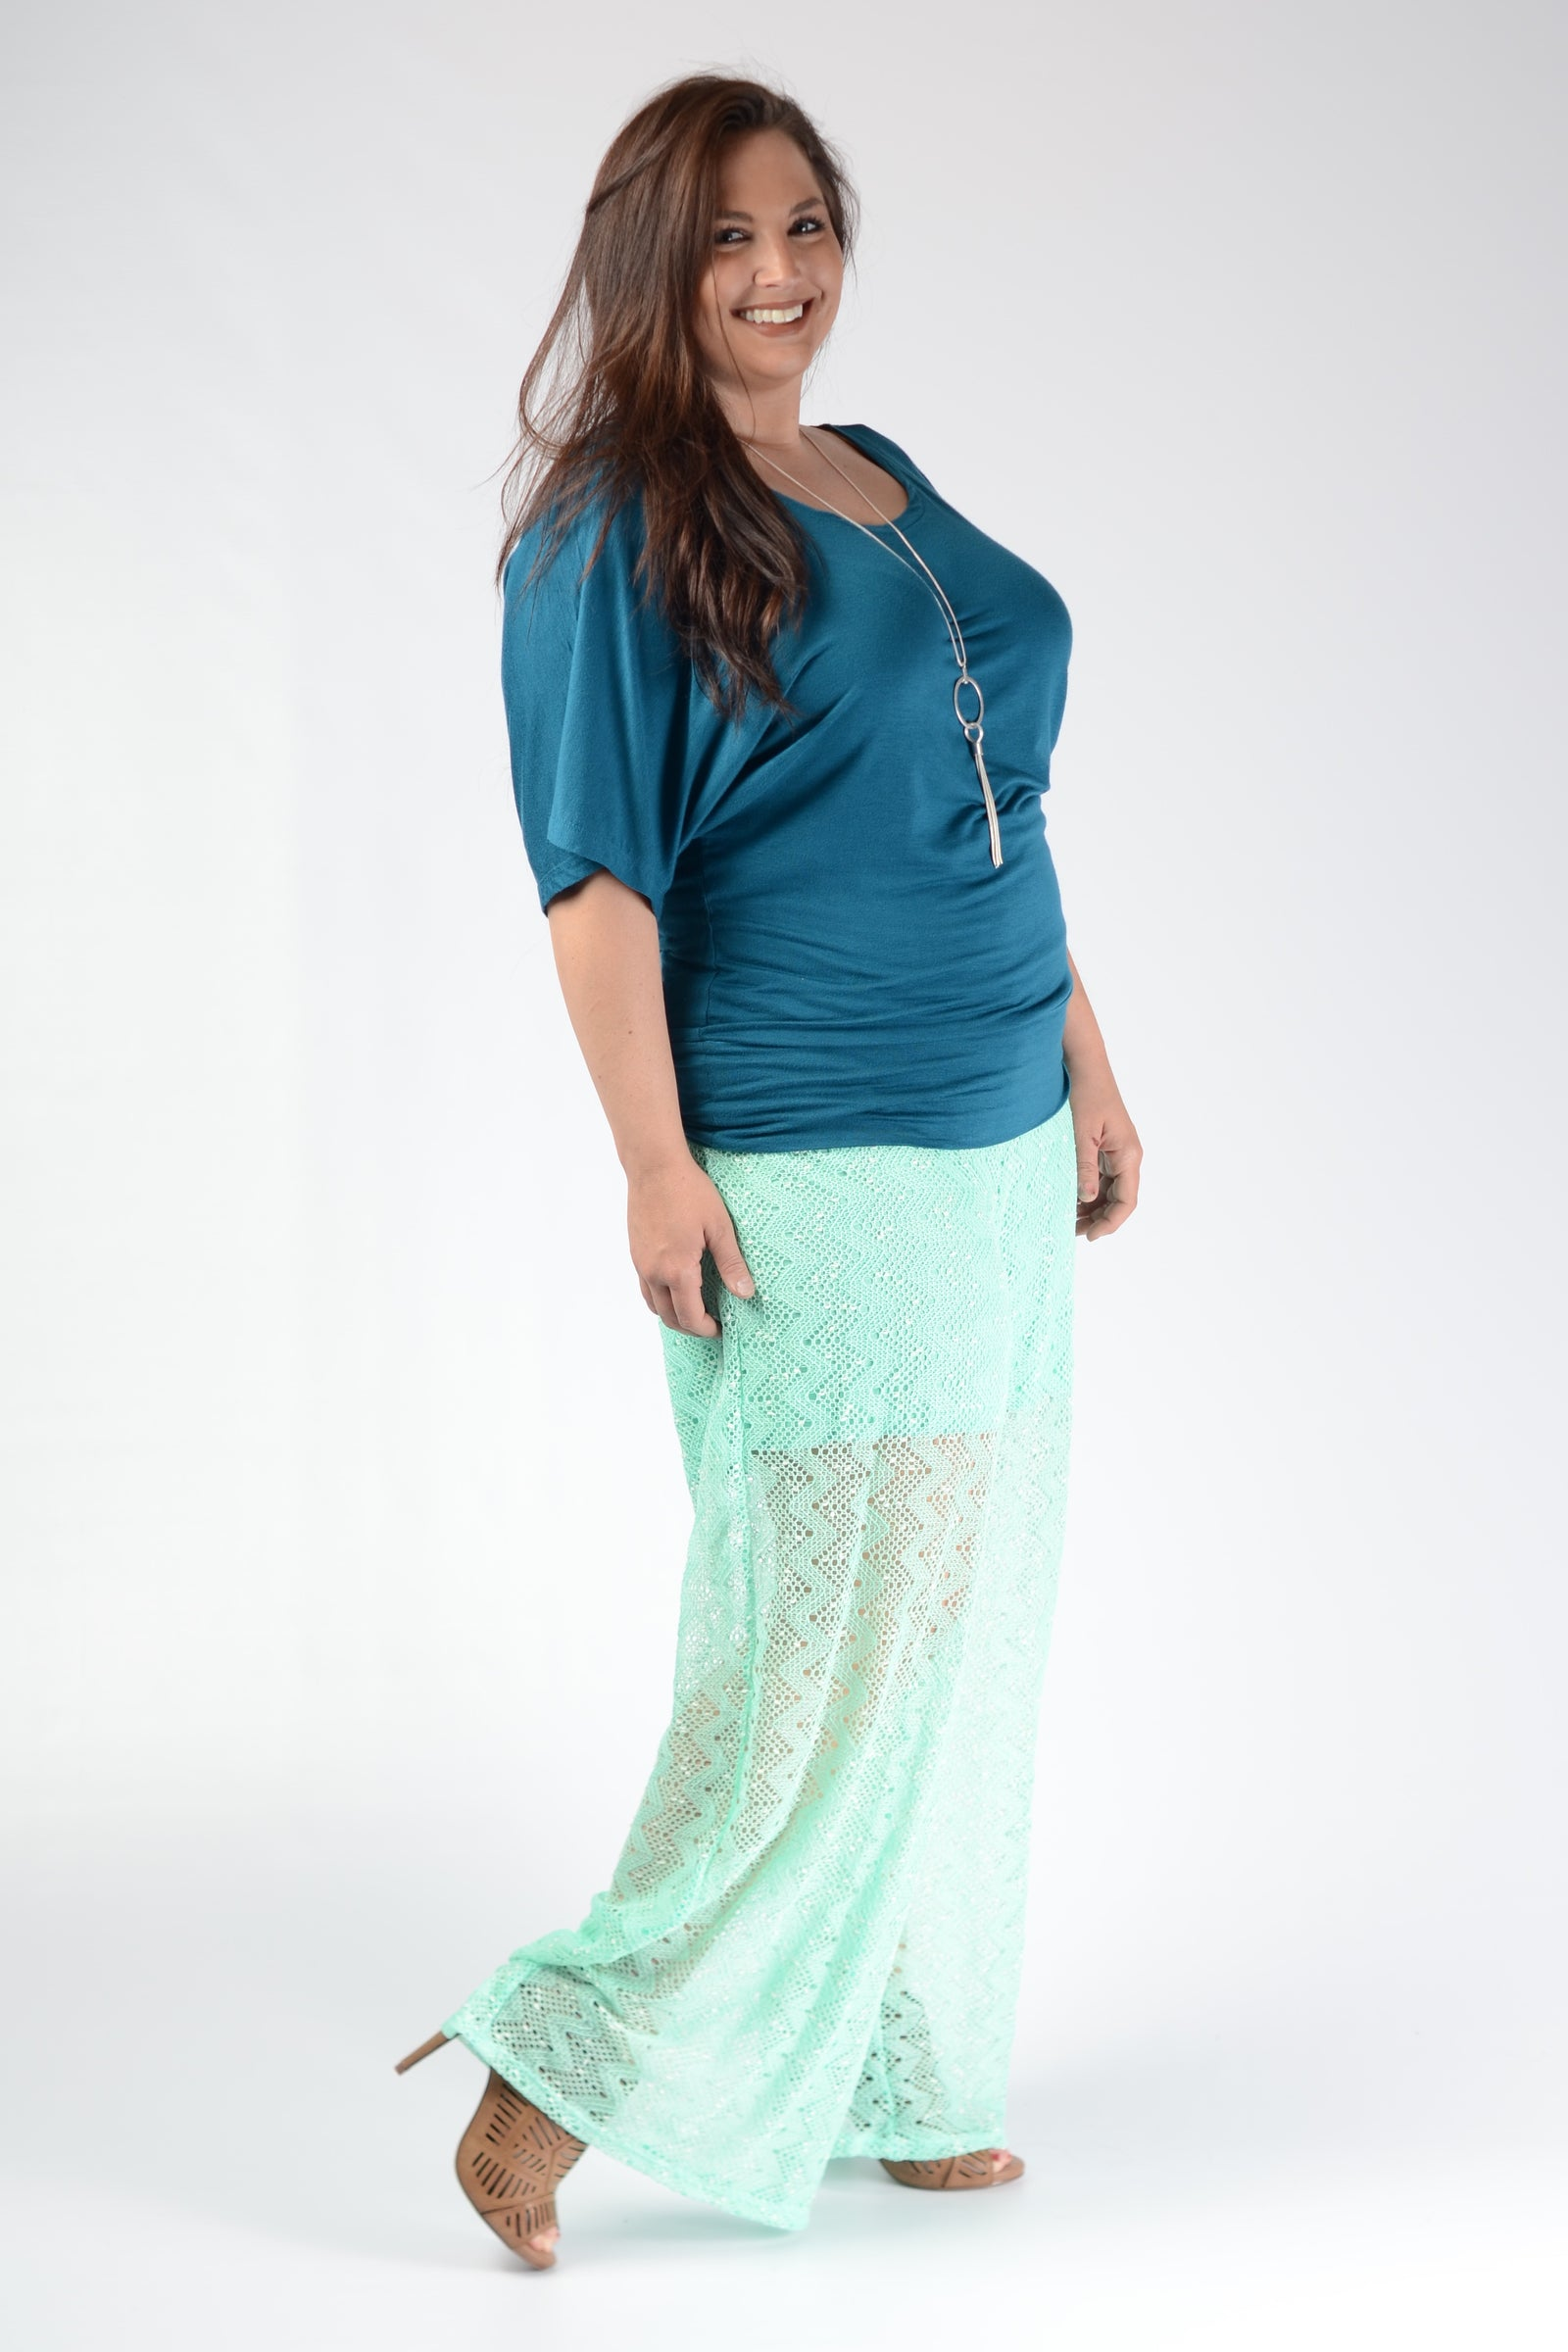 Mint Lace Pants - www.mycurvystore.com - Curvy Boutique - Plus Size